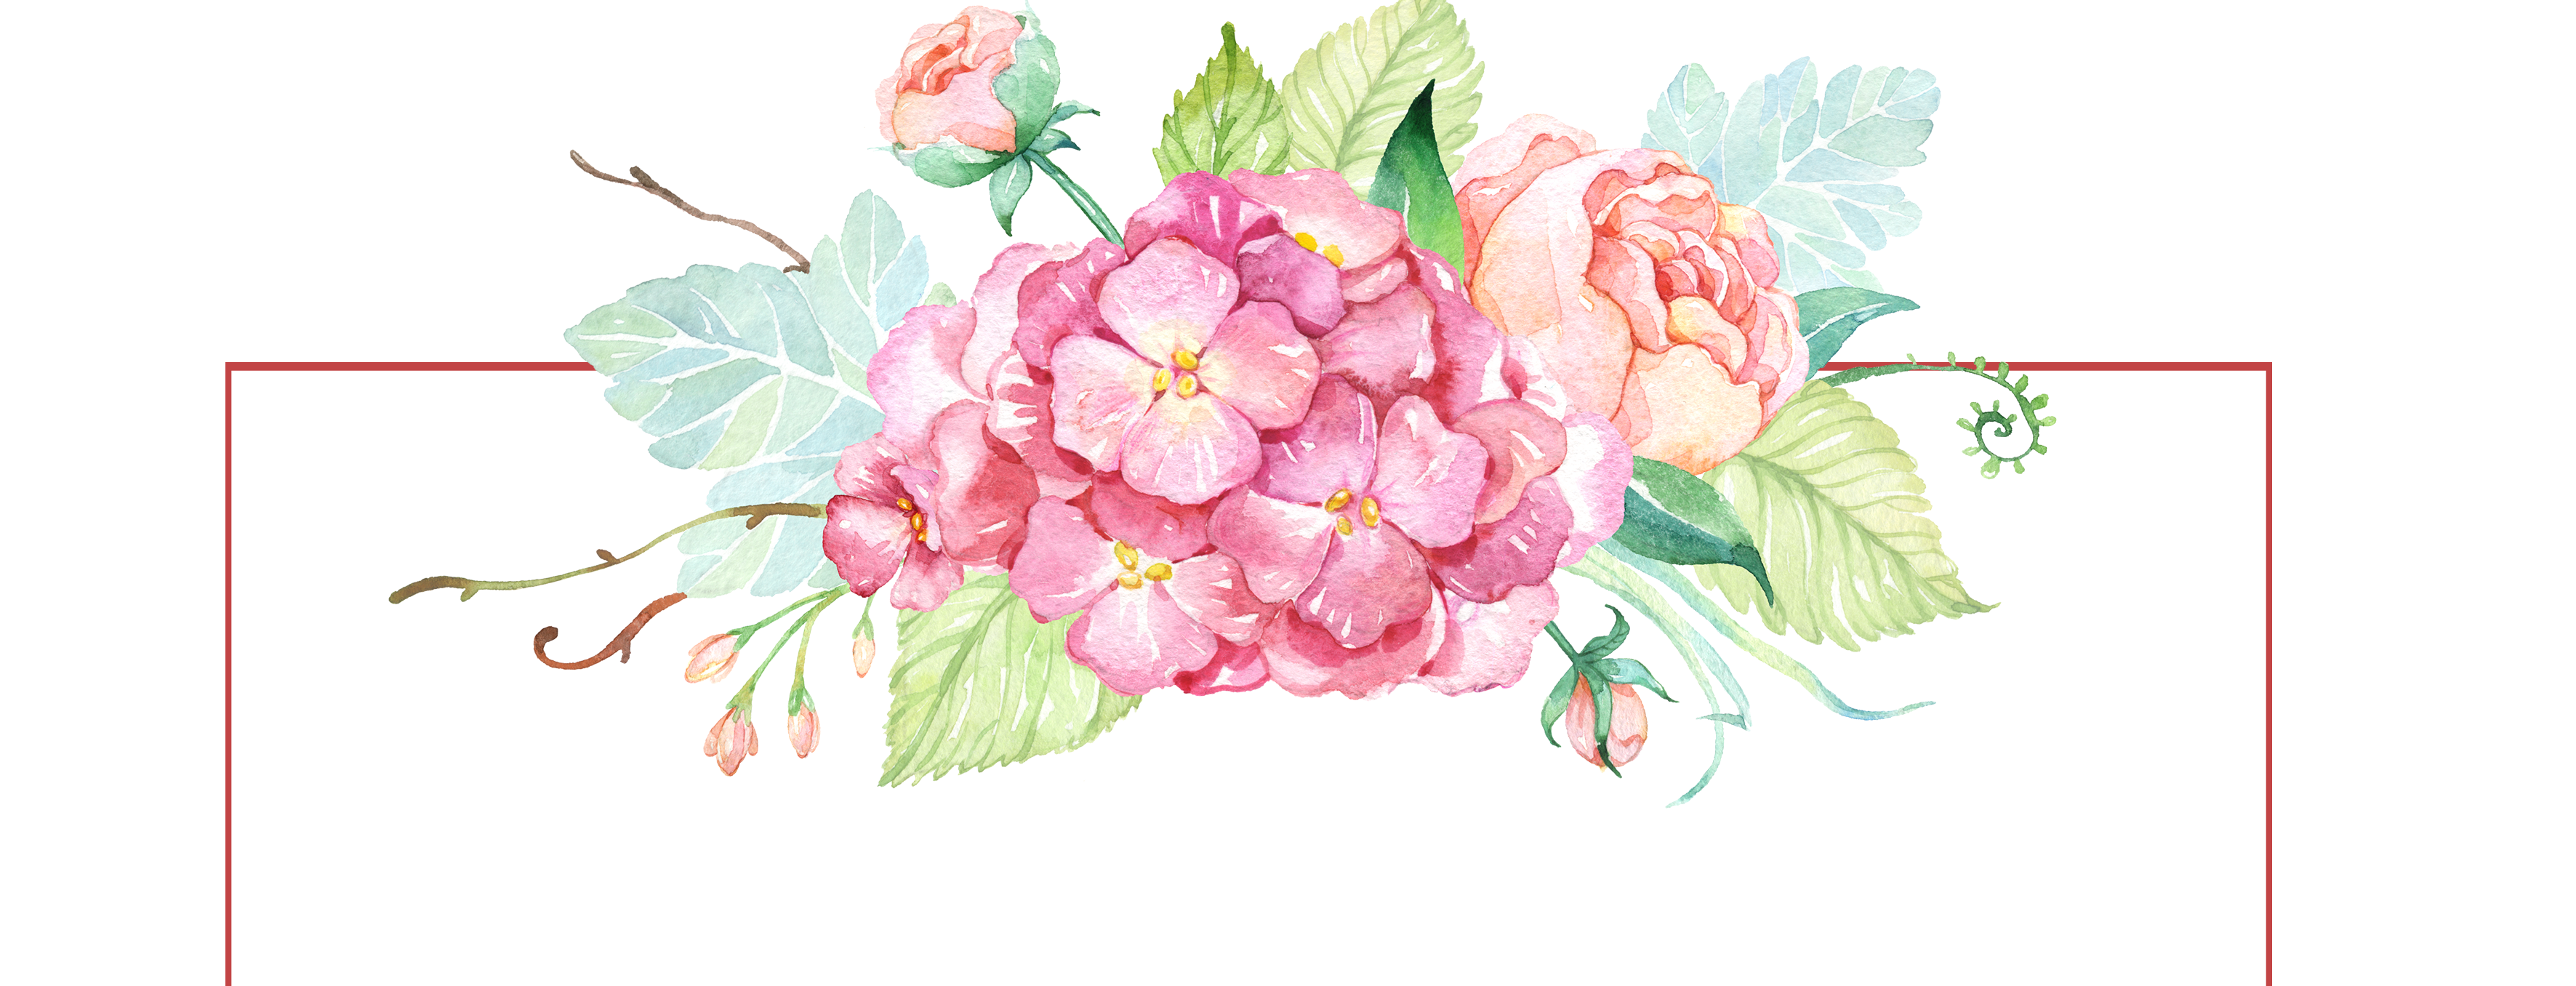 Flower banner png. Free watercolor with flowers